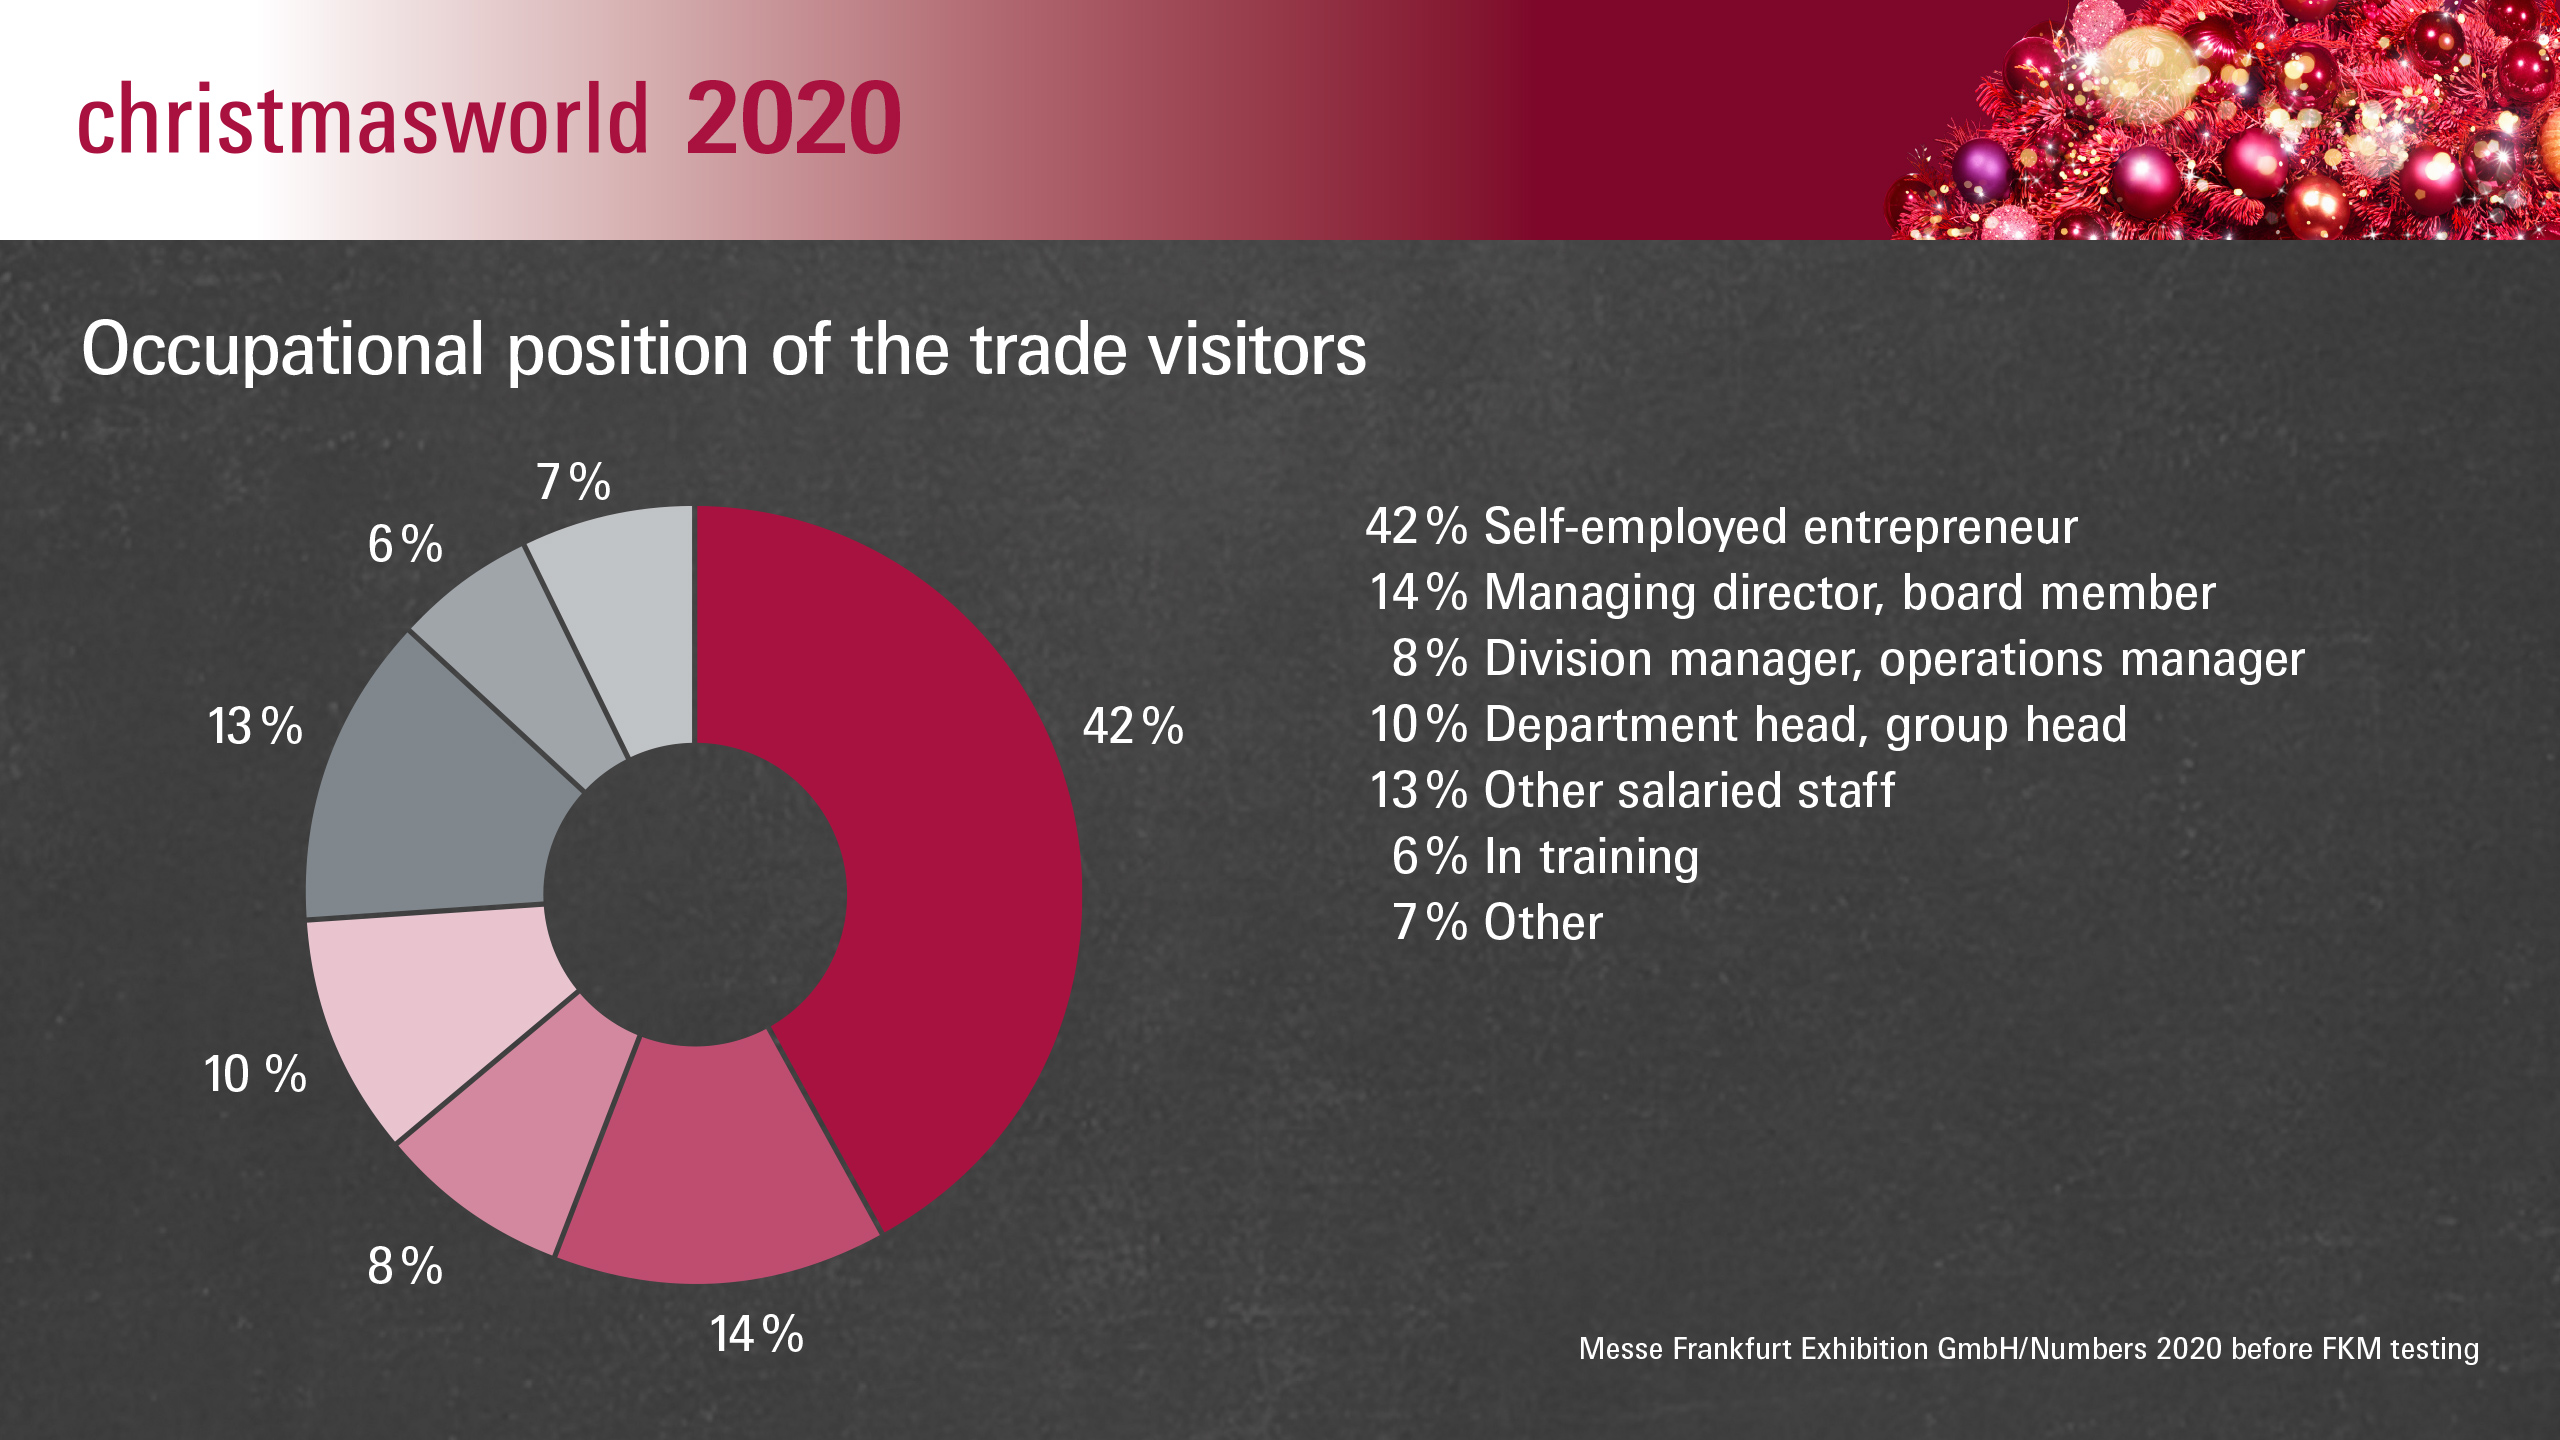 Christmasworld 2020: Occupational position of the trade visitors